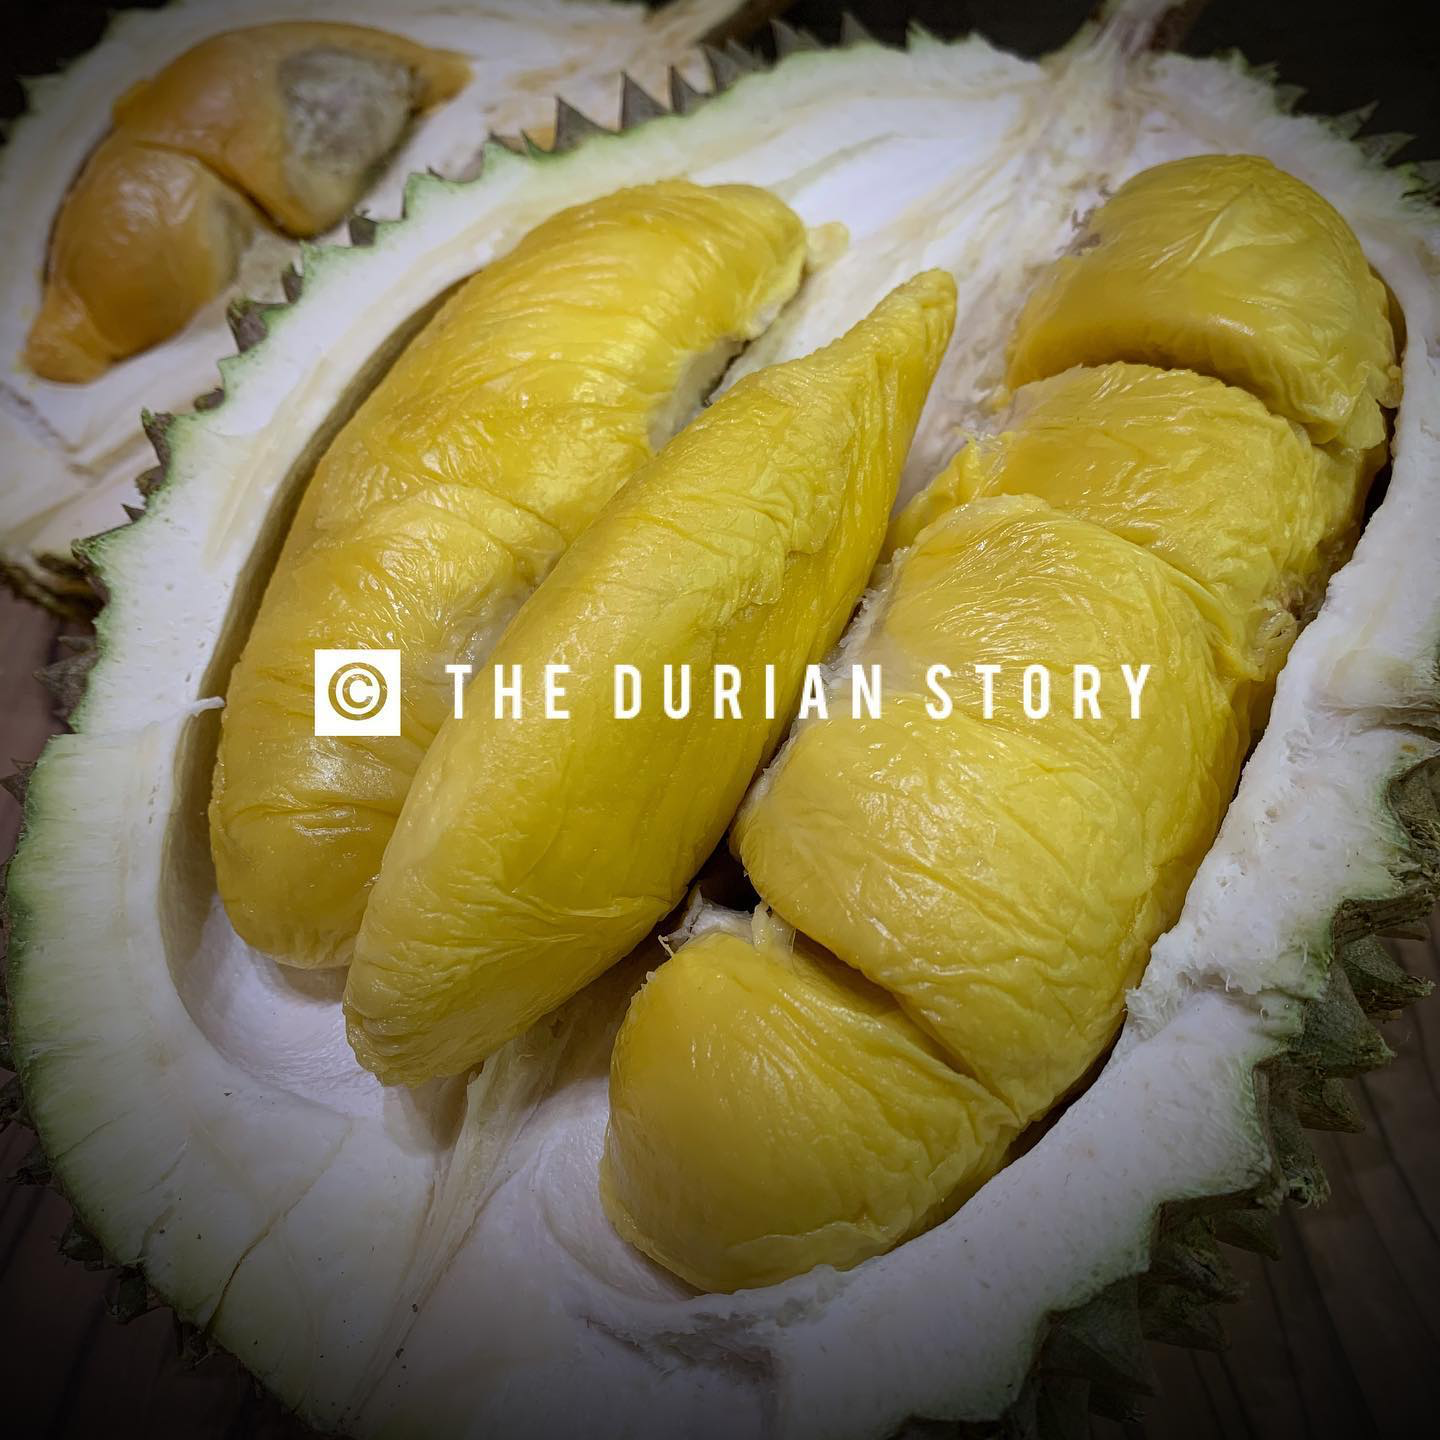 20200608-the durian story.png